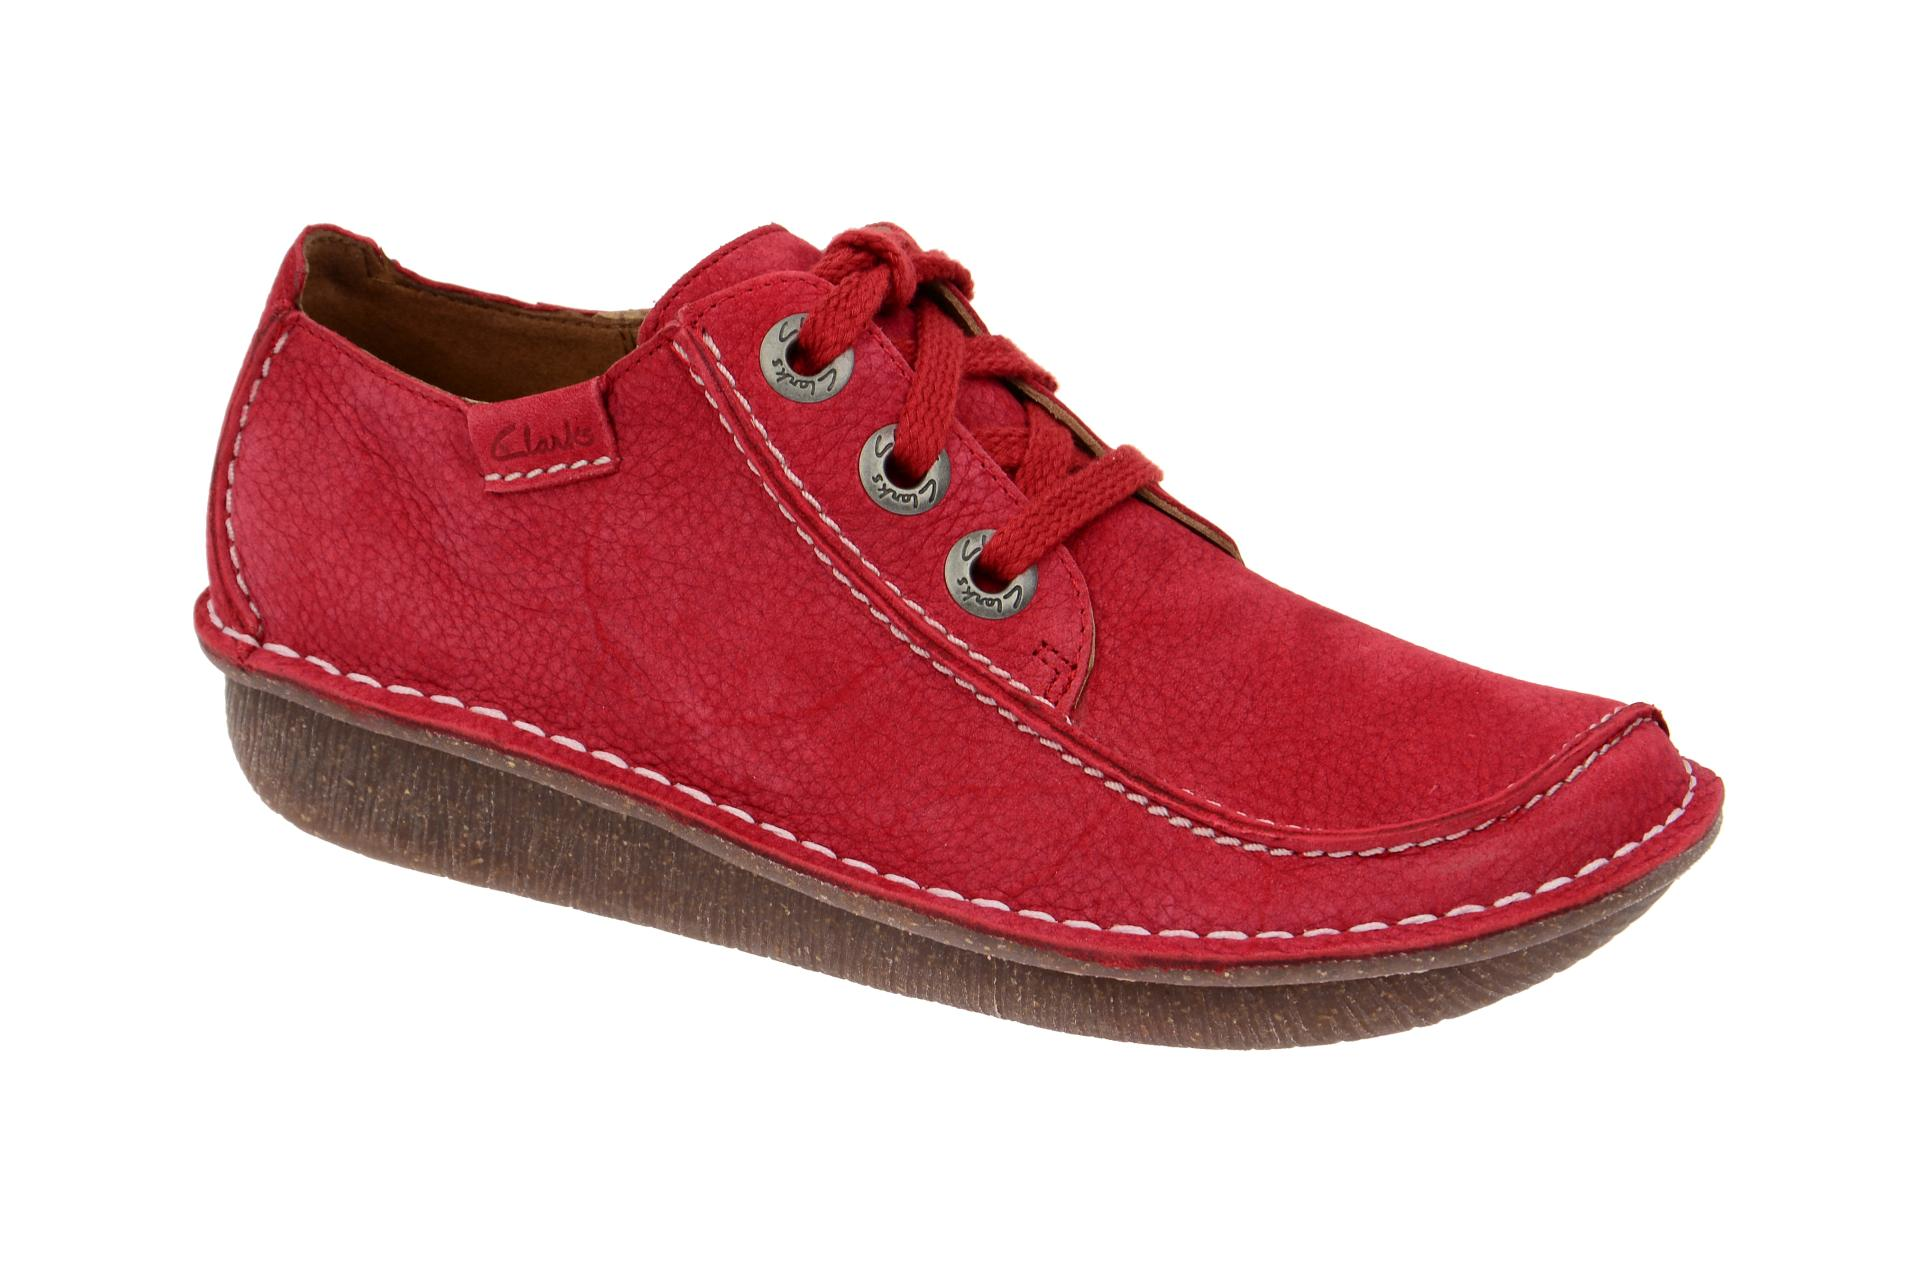 riesige Auswahl an aktuelles Styling niedrigerer Preis mit Clarks Funny Dream Schuhe hell-rot